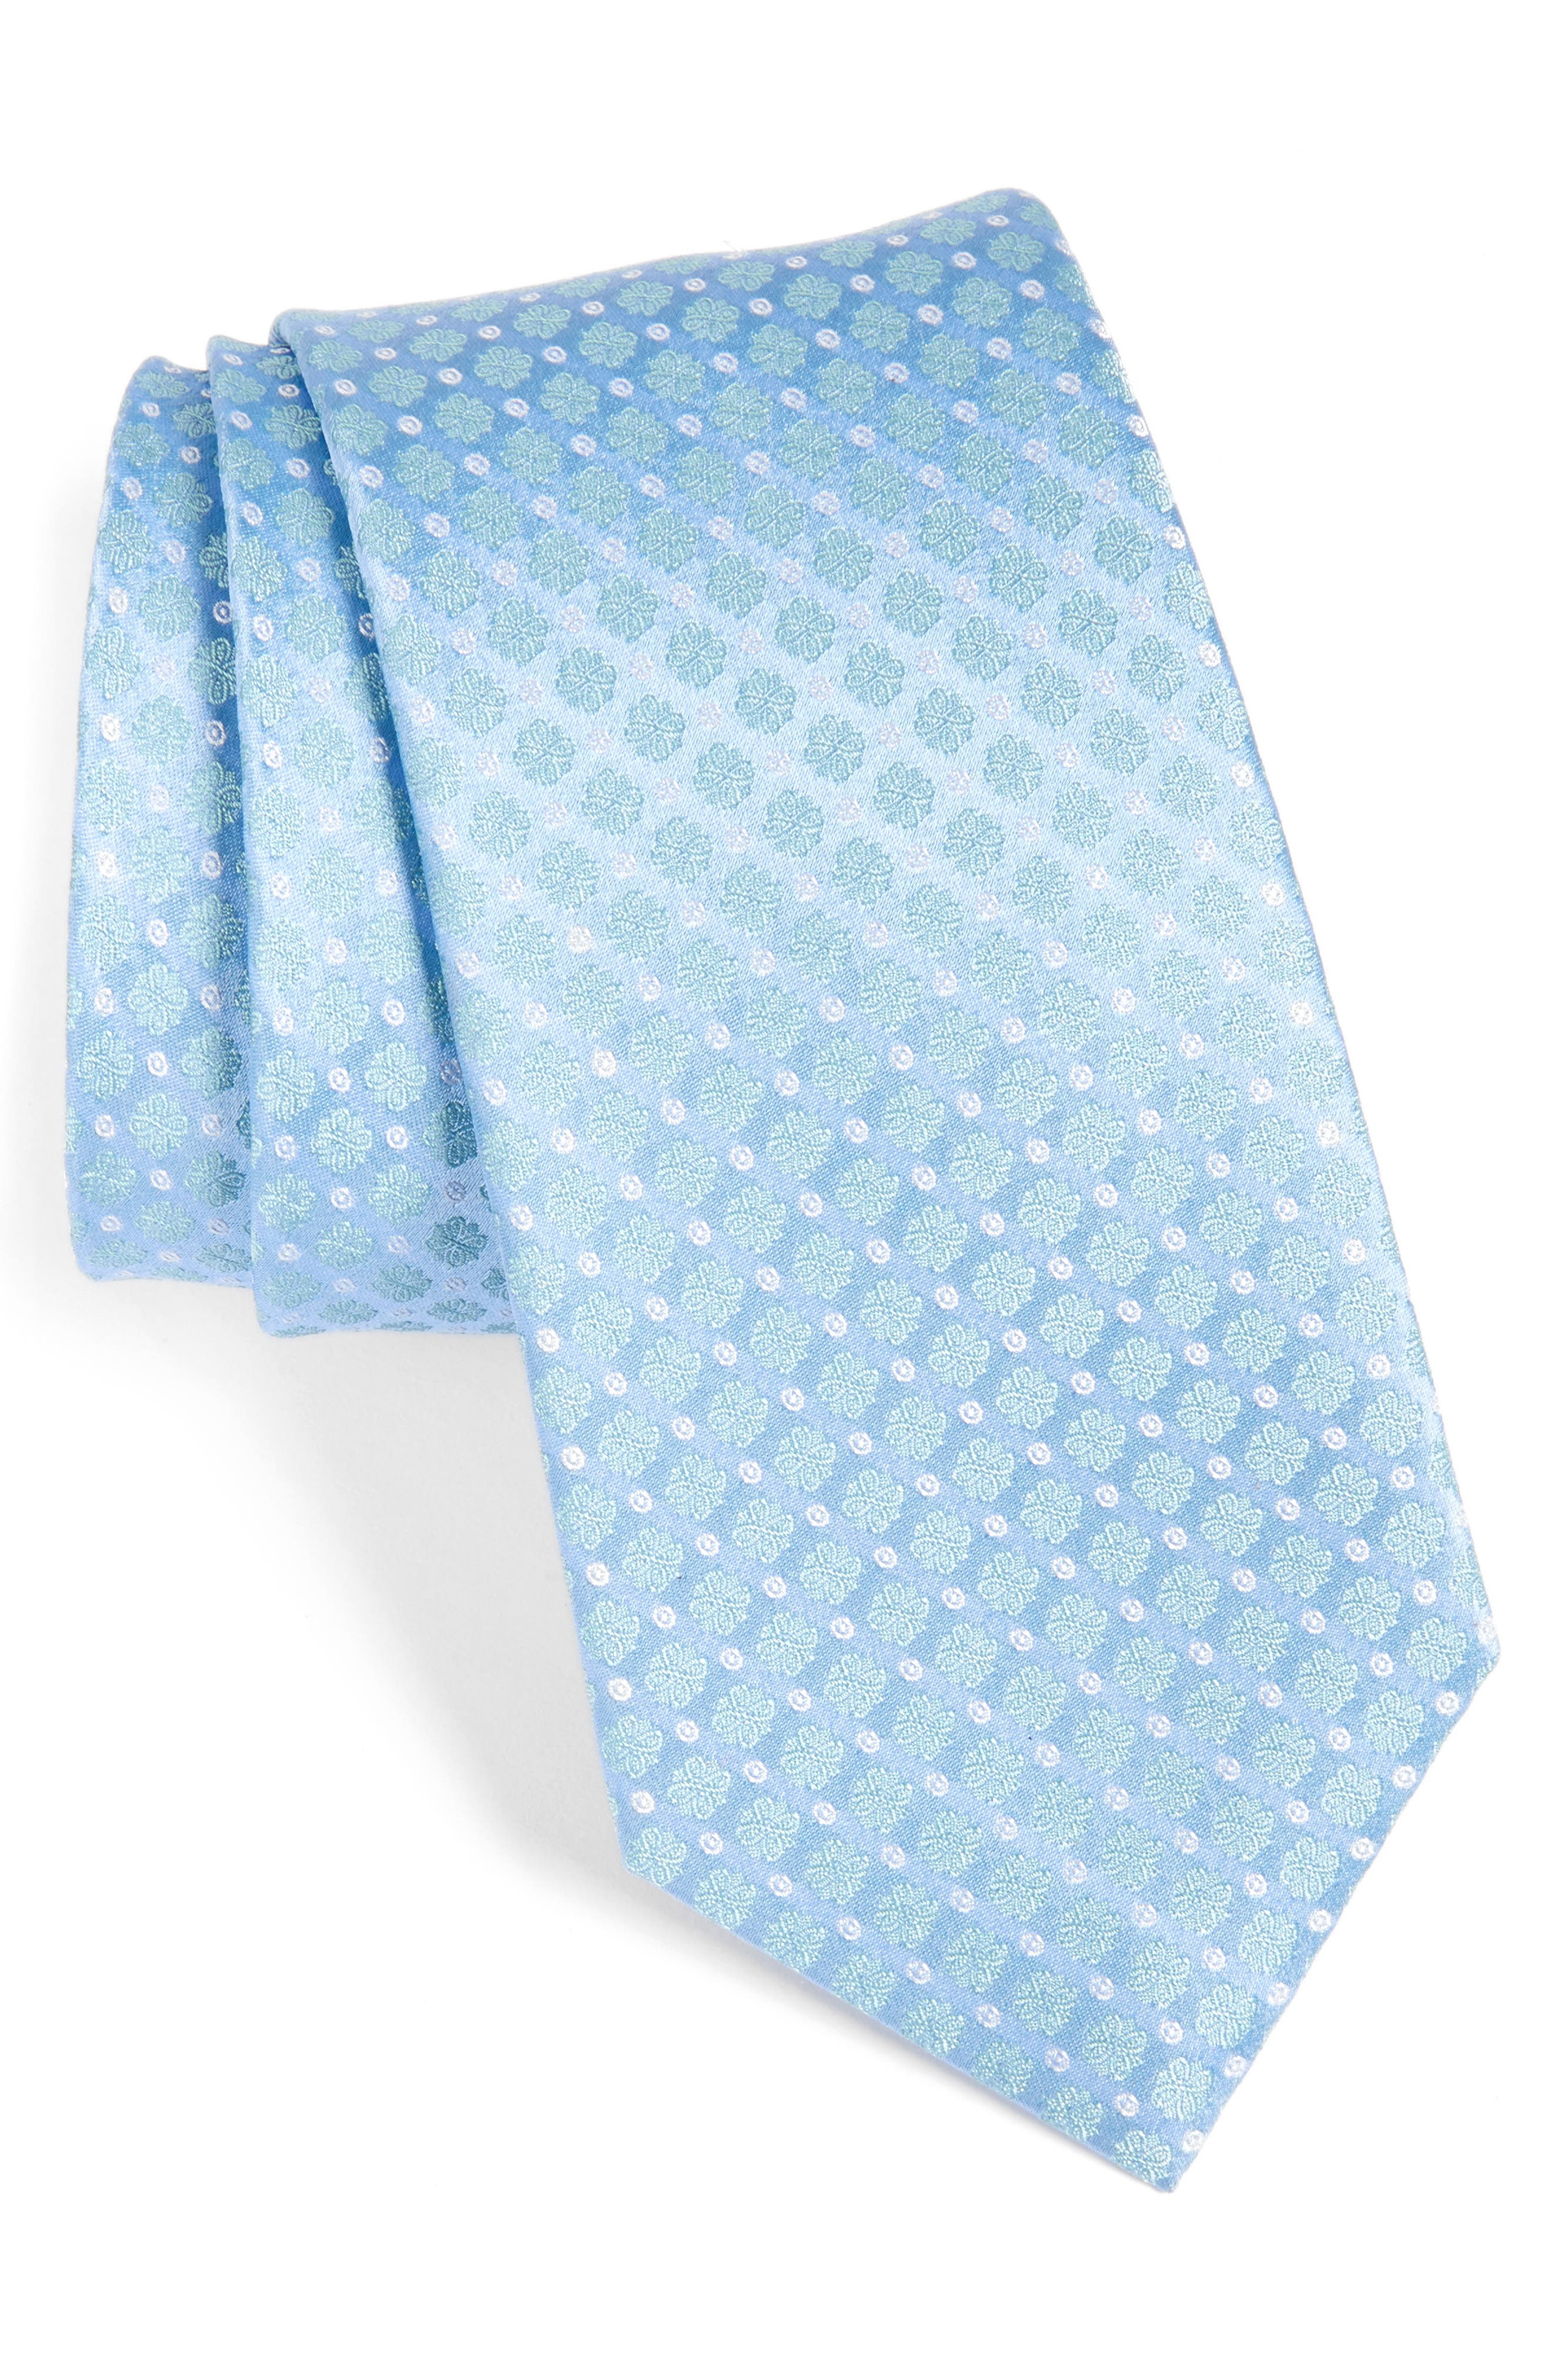 Alternate Image 1 Selected - Calibrate Forget Me Not Floral Silk Tie